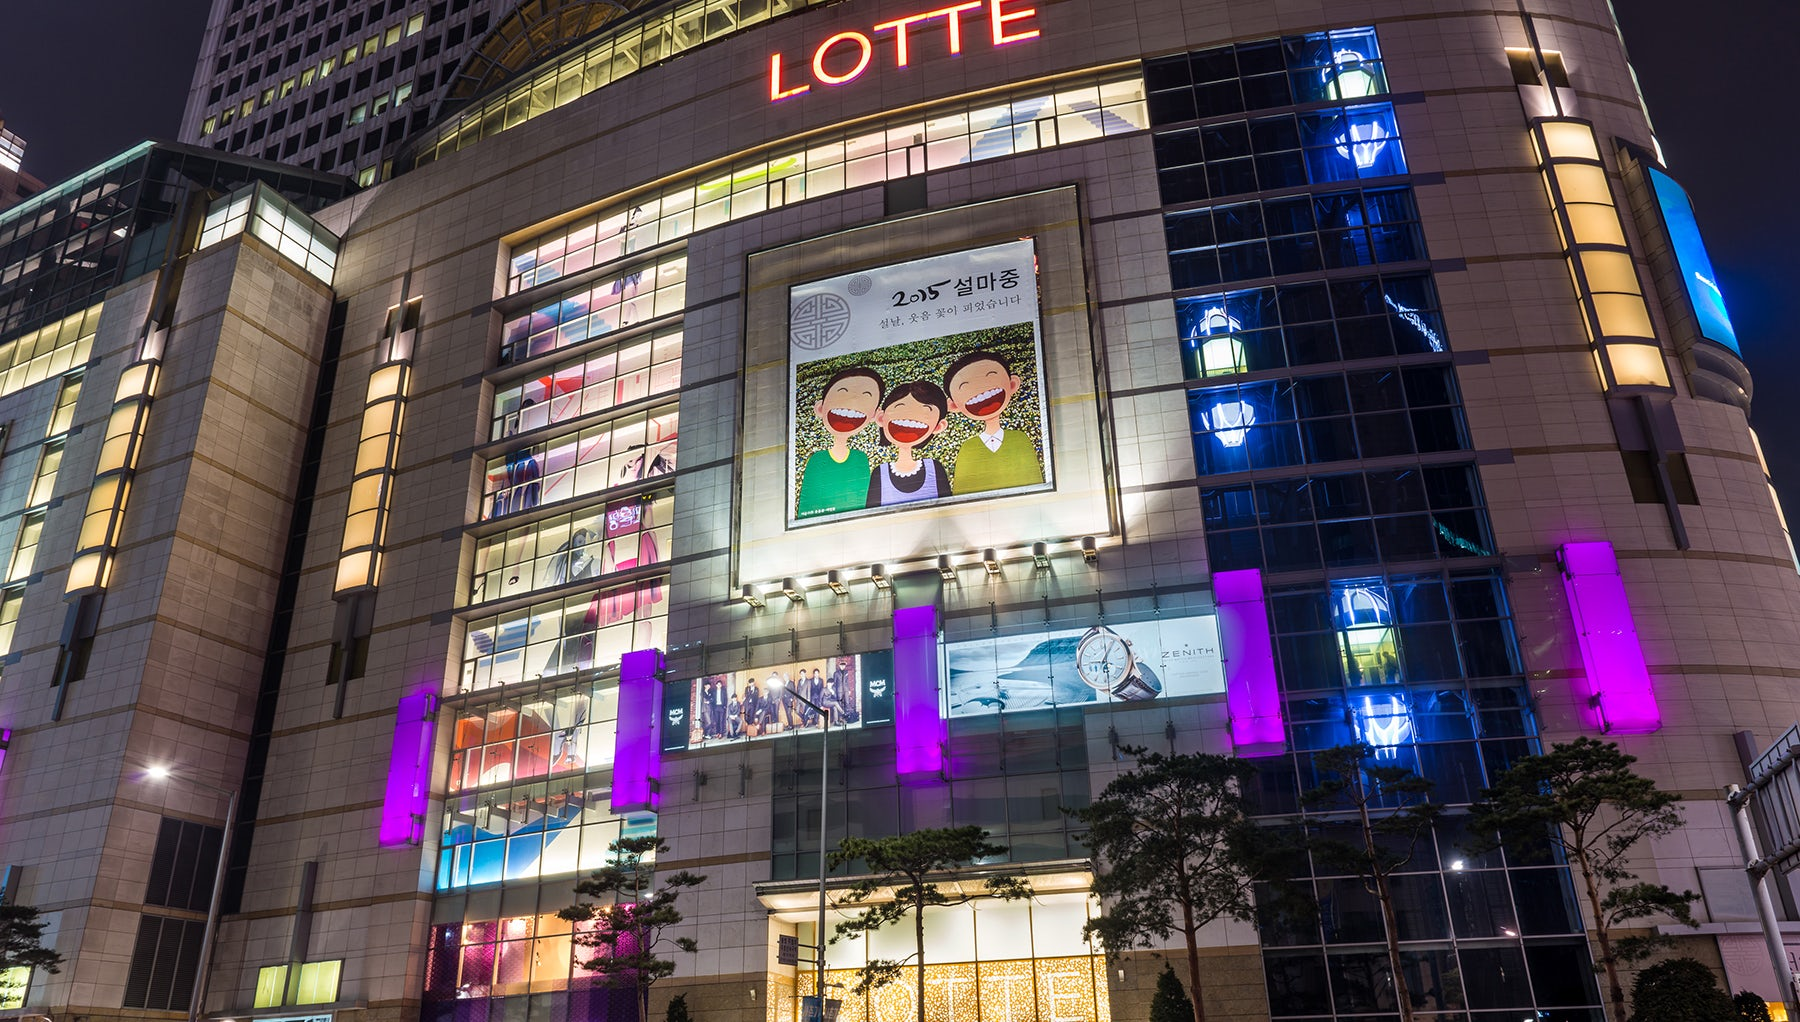 A Lotte department store | Source: Shutterstock